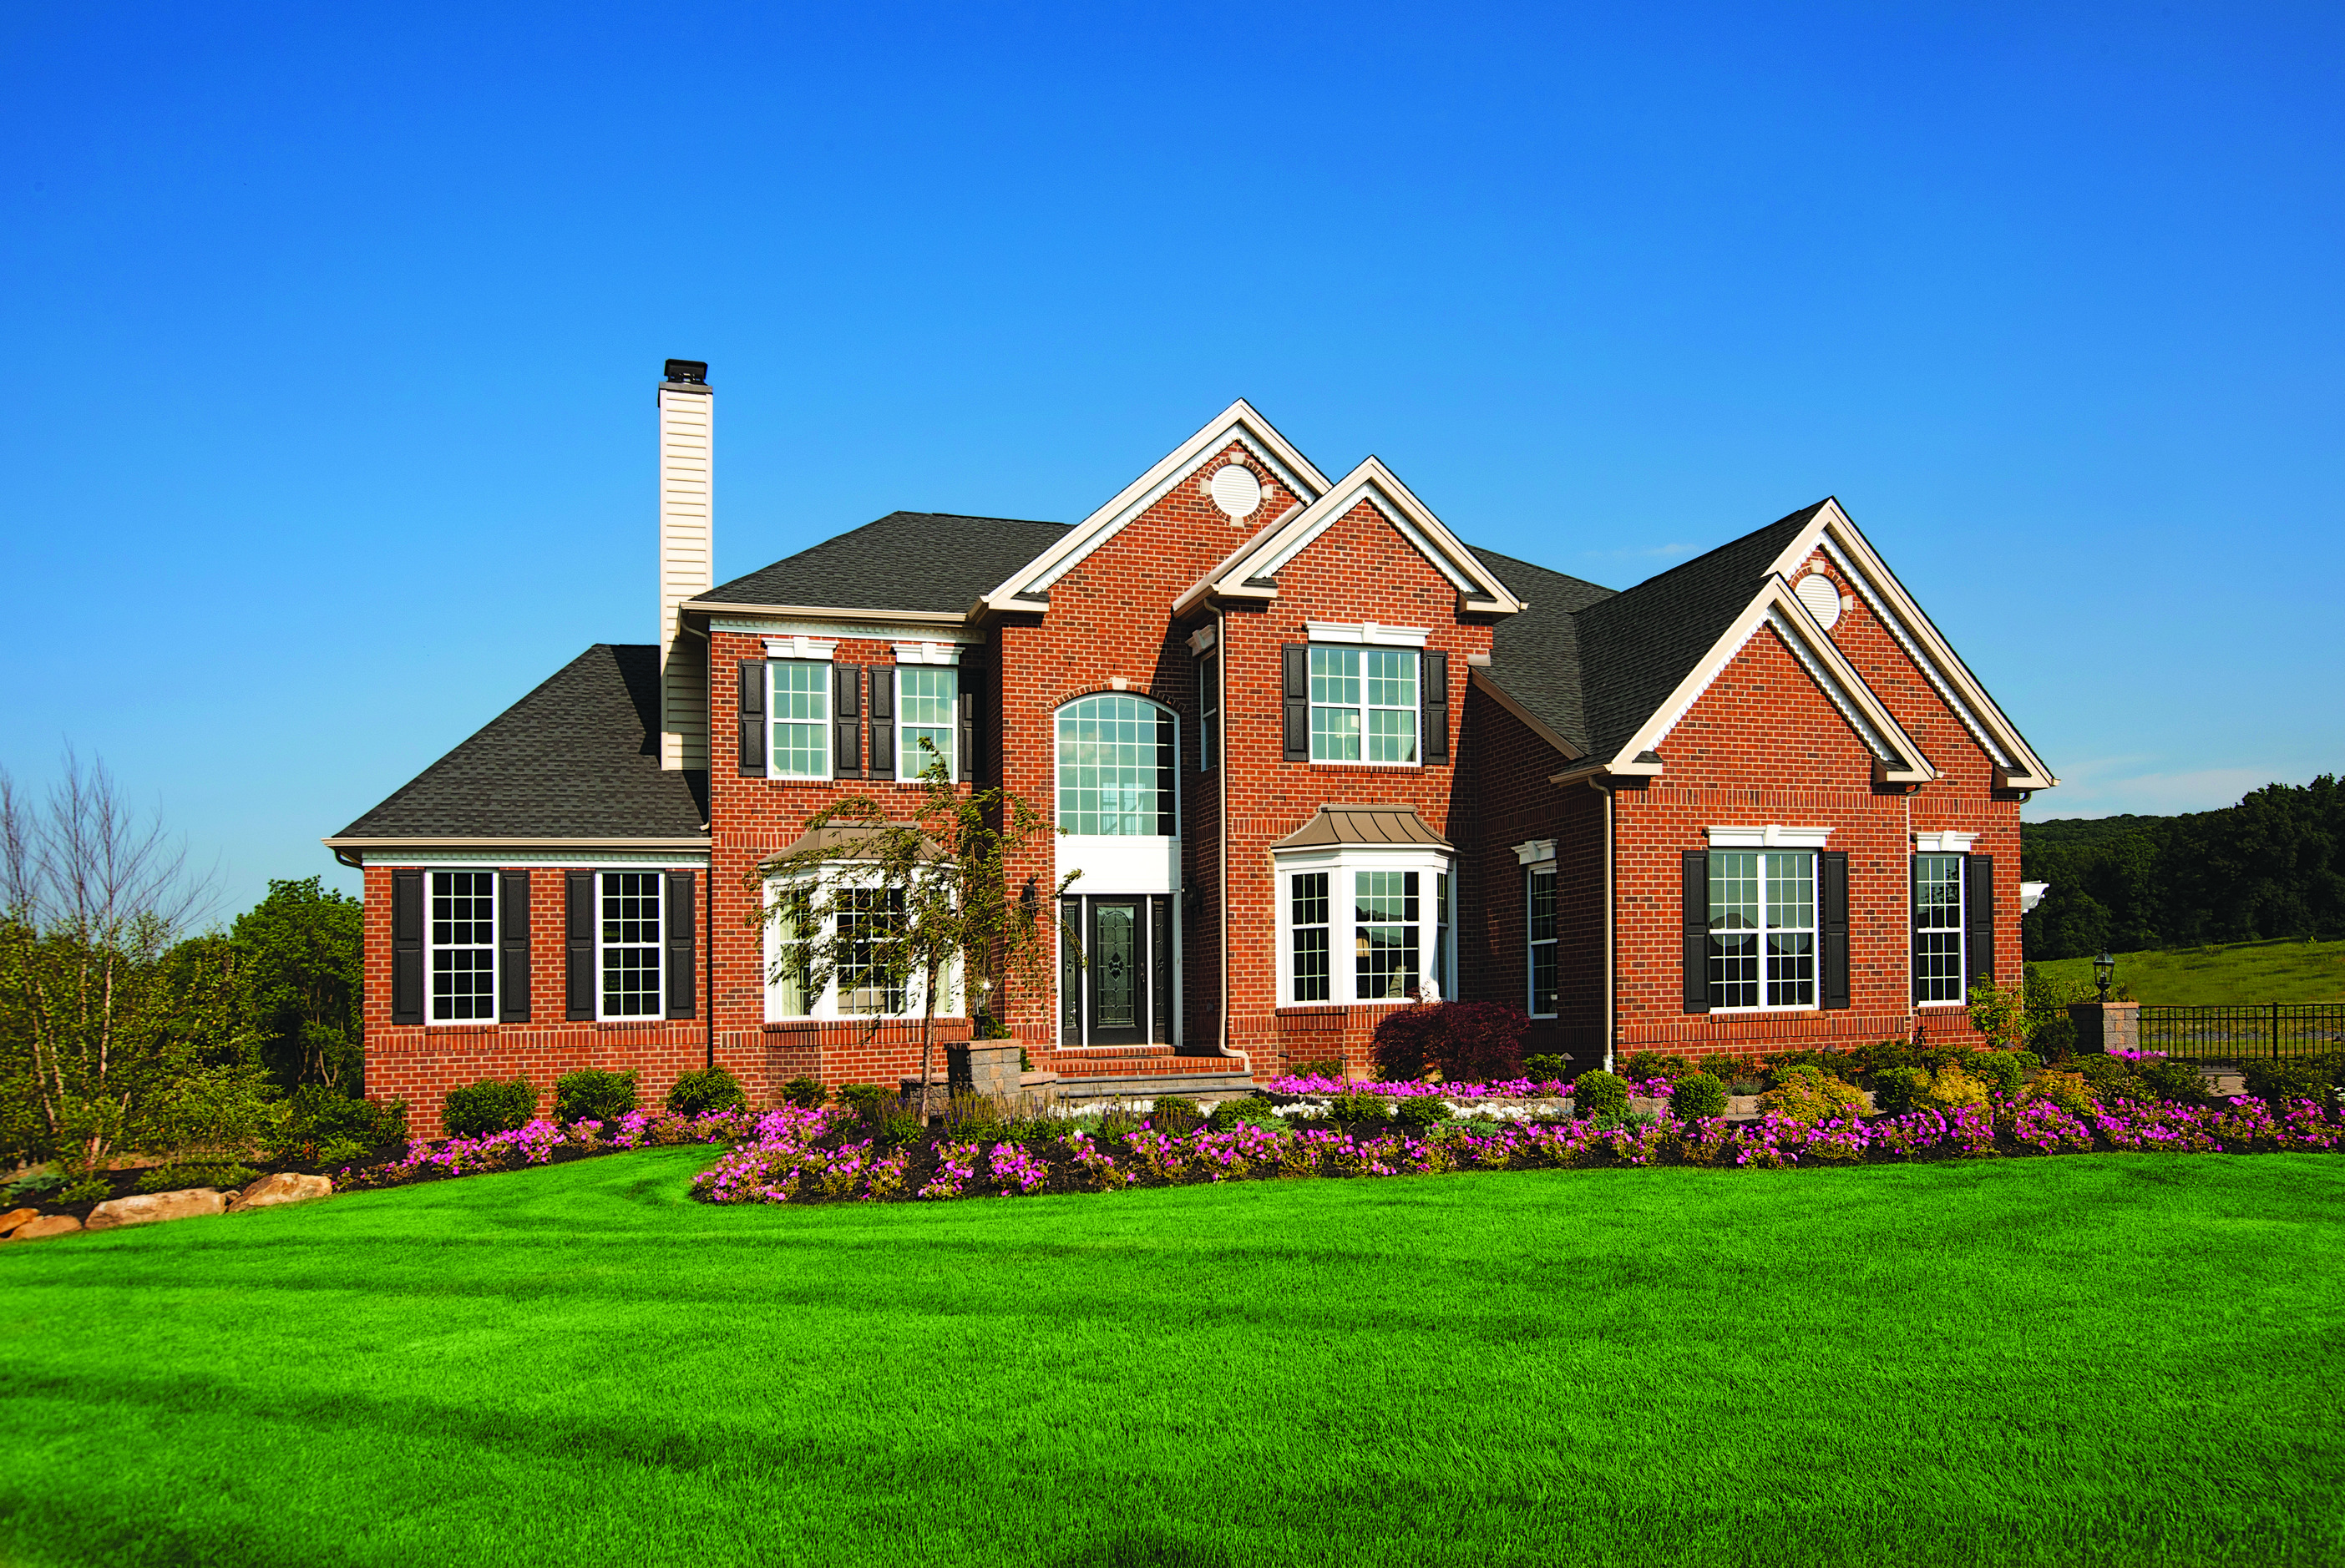 Exterior of suburban home designed for multigenerational living.